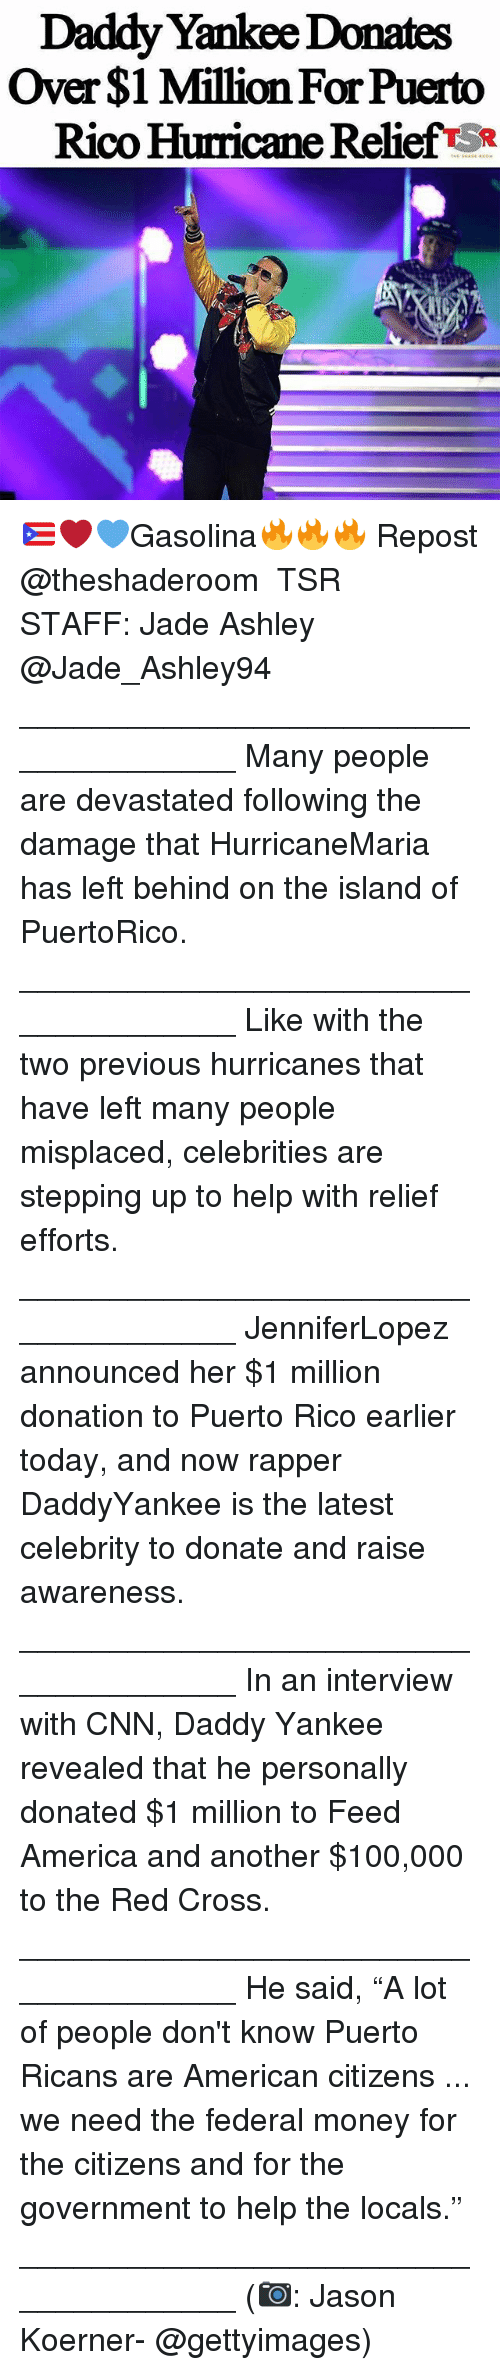 """Daddy Yankee: Daddy Yankee Donates  Over $1 Million For Puerto  Rico Hurricane Relief SR 🇵🇷❤💙Gasolina🔥🔥🔥 Repost @theshaderoom ・・・ TSR STAFF: Jade Ashley @Jade_Ashley94 _____________________________________ Many people are devastated following the damage that HurricaneMaria has left behind on the island of PuertoRico. _____________________________________ Like with the two previous hurricanes that have left many people misplaced, celebrities are stepping up to help with relief efforts. _____________________________________ JenniferLopez announced her $1 million donation to Puerto Rico earlier today, and now rapper DaddyYankee is the latest celebrity to donate and raise awareness. _____________________________________ In an interview with CNN, Daddy Yankee revealed that he personally donated $1 million to Feed America and another $100,000 to the Red Cross. _____________________________________ He said, """"A lot of people don't know Puerto Ricans are American citizens ... we need the federal money for the citizens and for the government to help the locals."""" _____________________________________ (📷: Jason Koerner- @gettyimages)"""